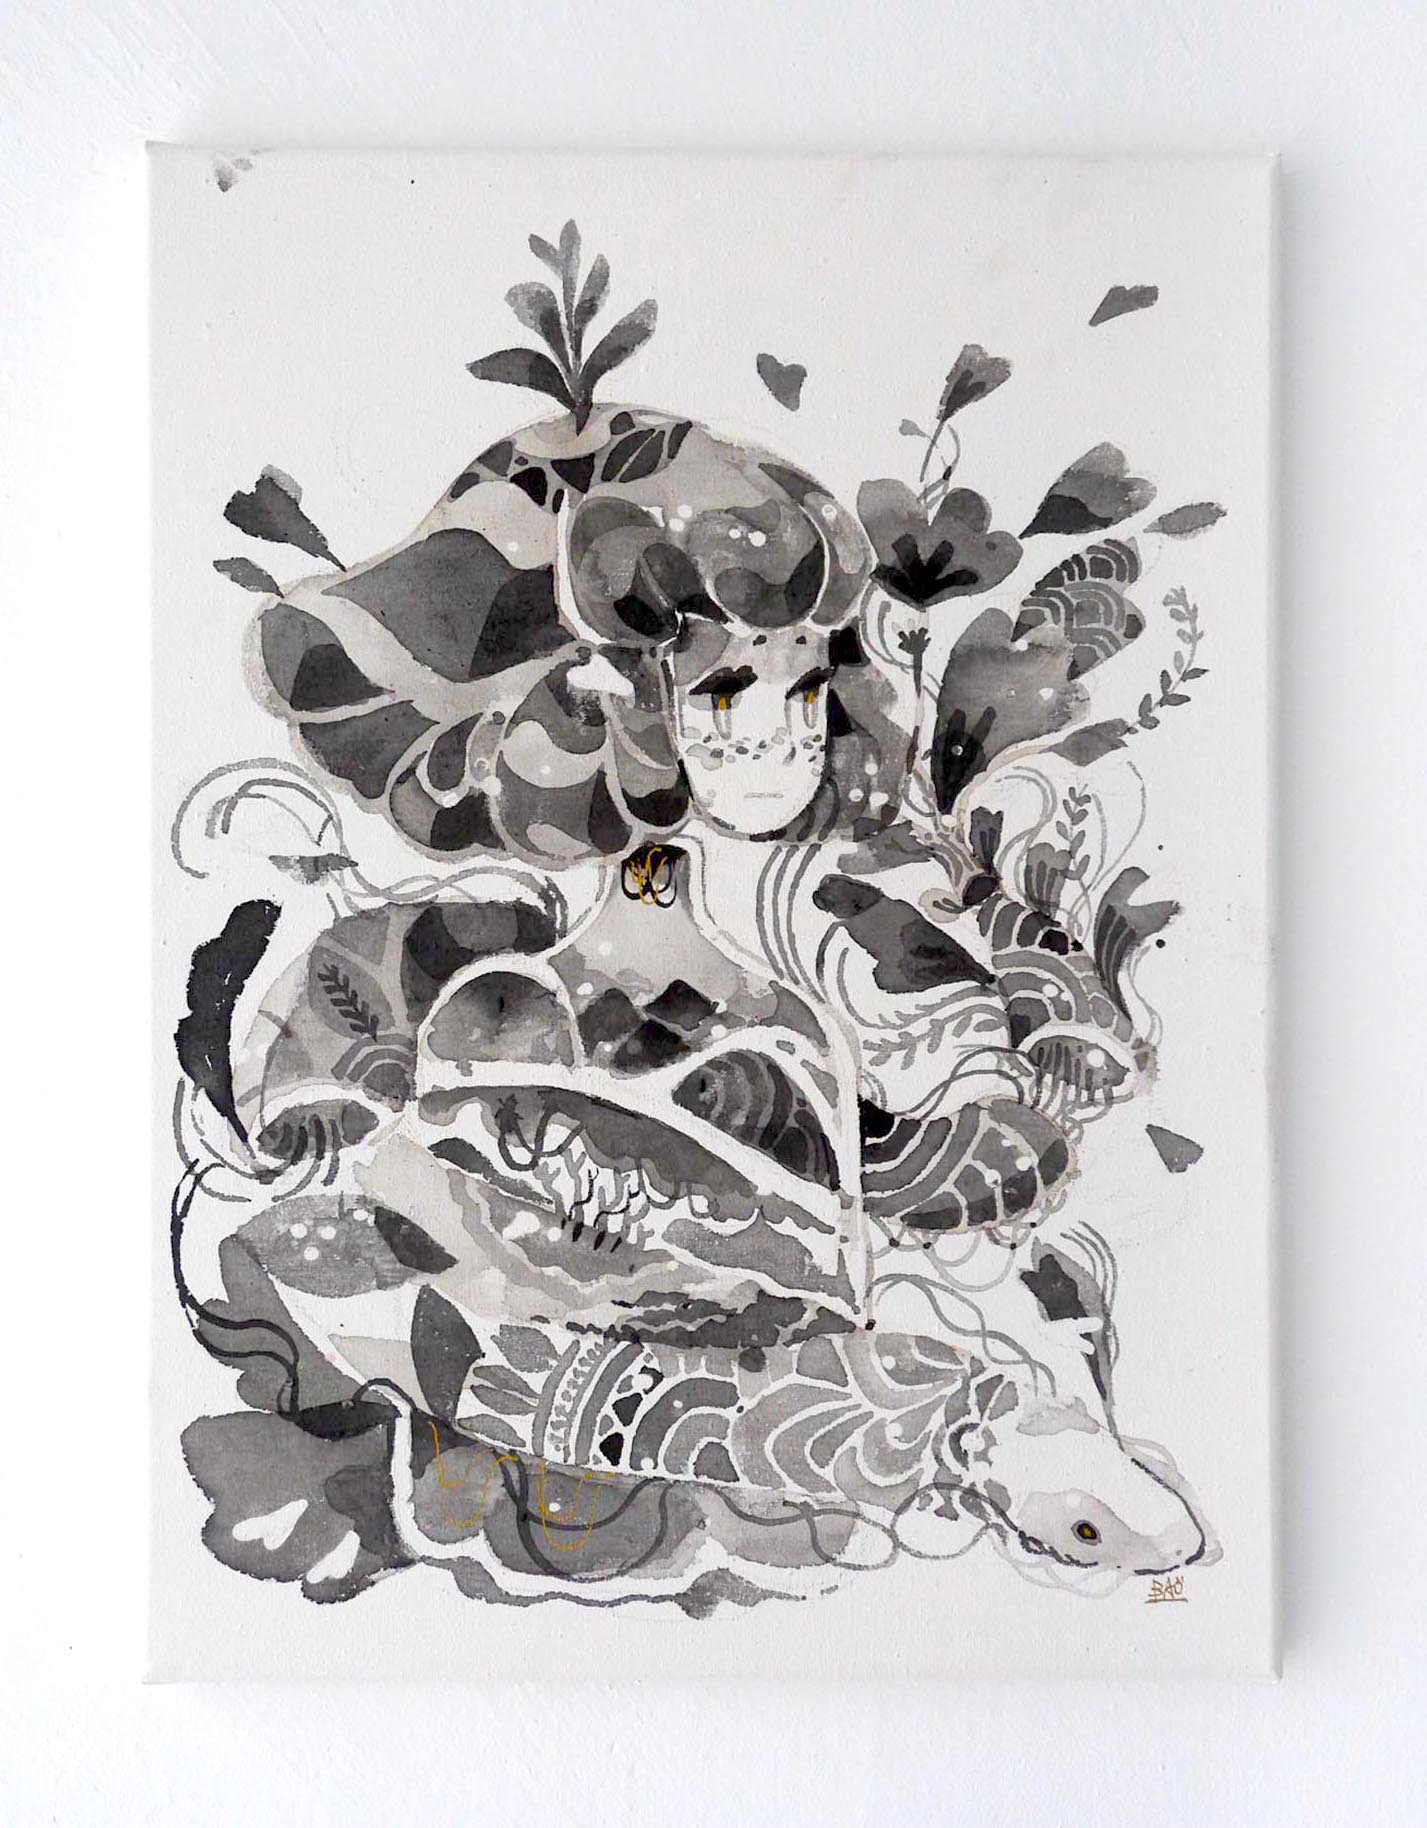 Bao Ho, Snake 1, 2019. 12 in x 16 in, Ink on canvas.